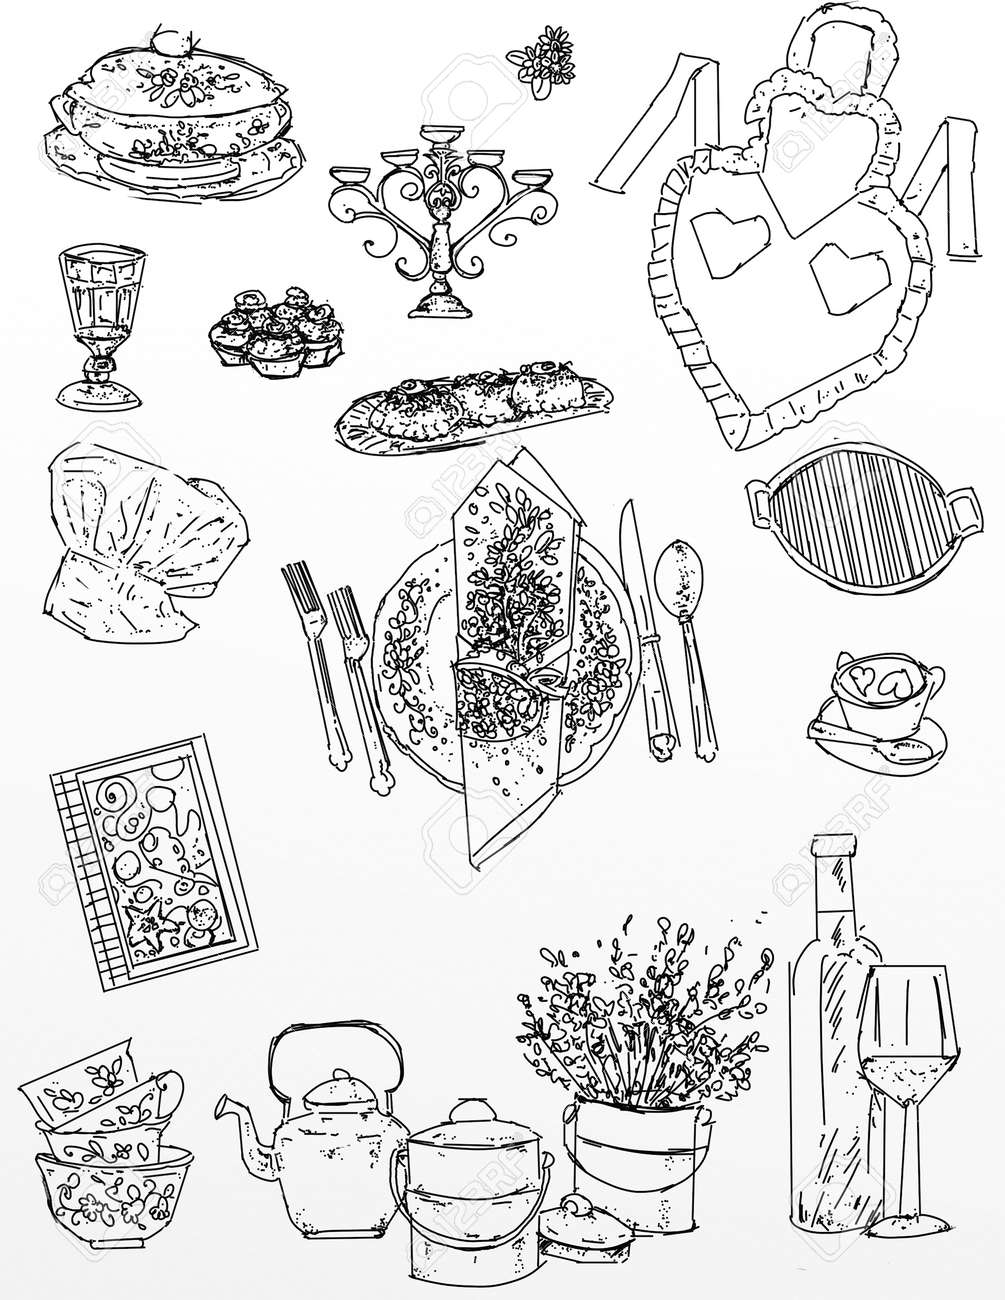 Realistic Drawings On The Stretch Of Kitchen And Food Items Stock Photo Picture And Royalty Free Image Image 88718055